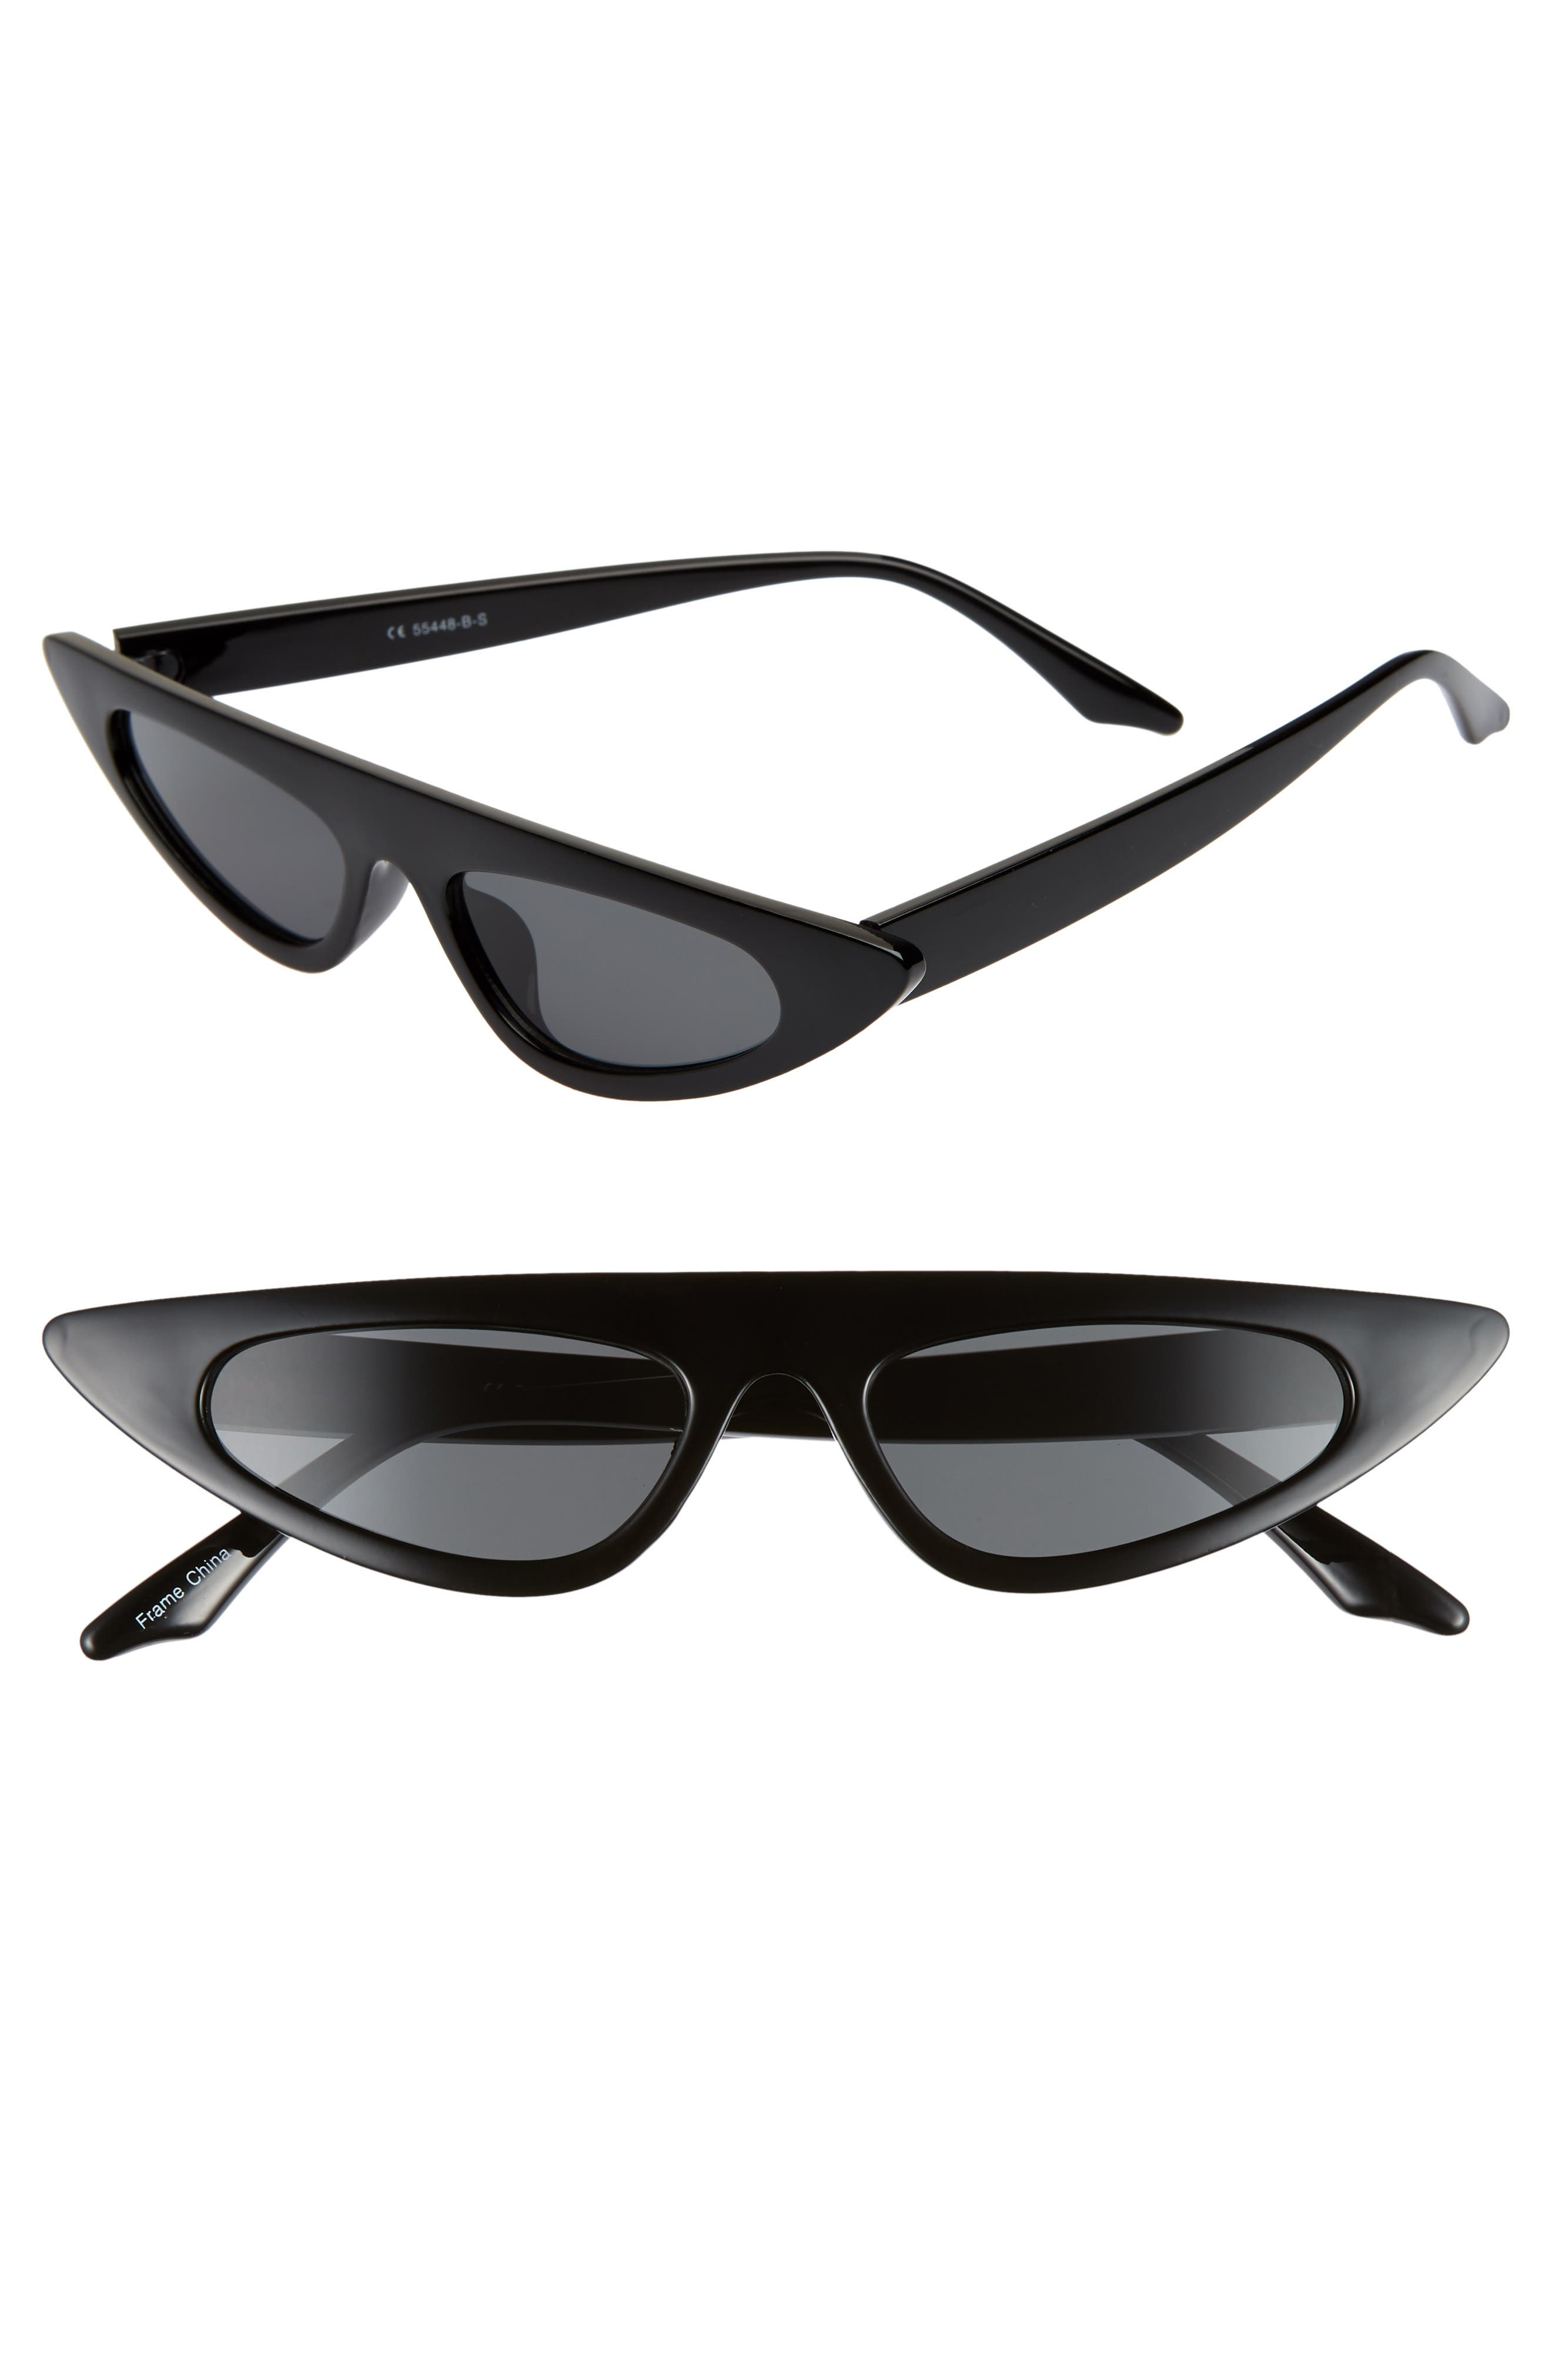 50mm Flat Top Cat Eye Sunglasses,                             Main thumbnail 1, color,                             BLACK